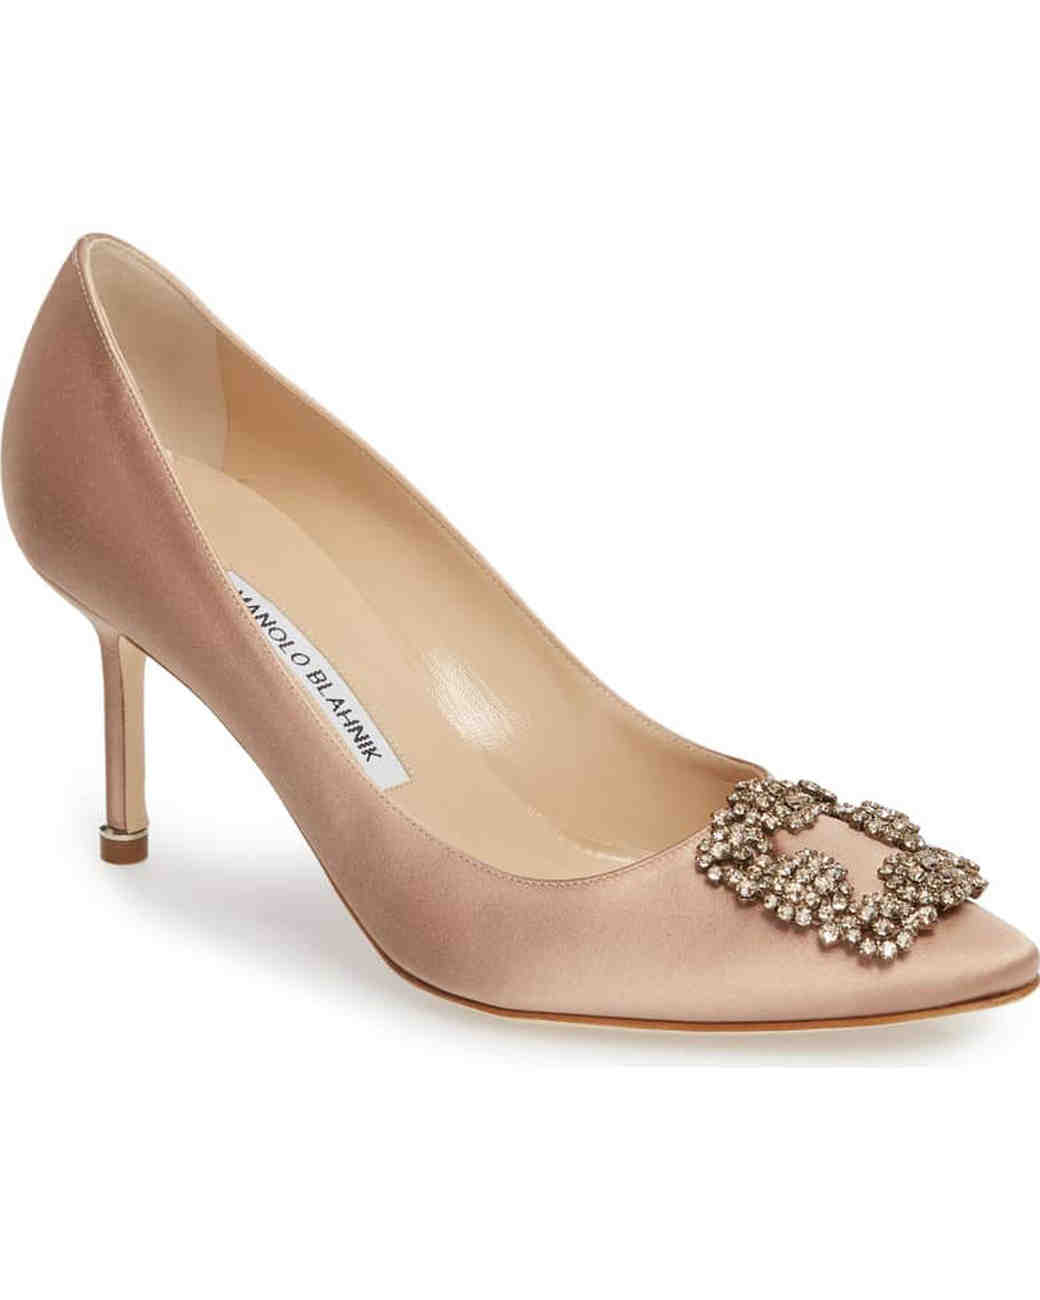 nude shoe tan crystal hight heel pumps